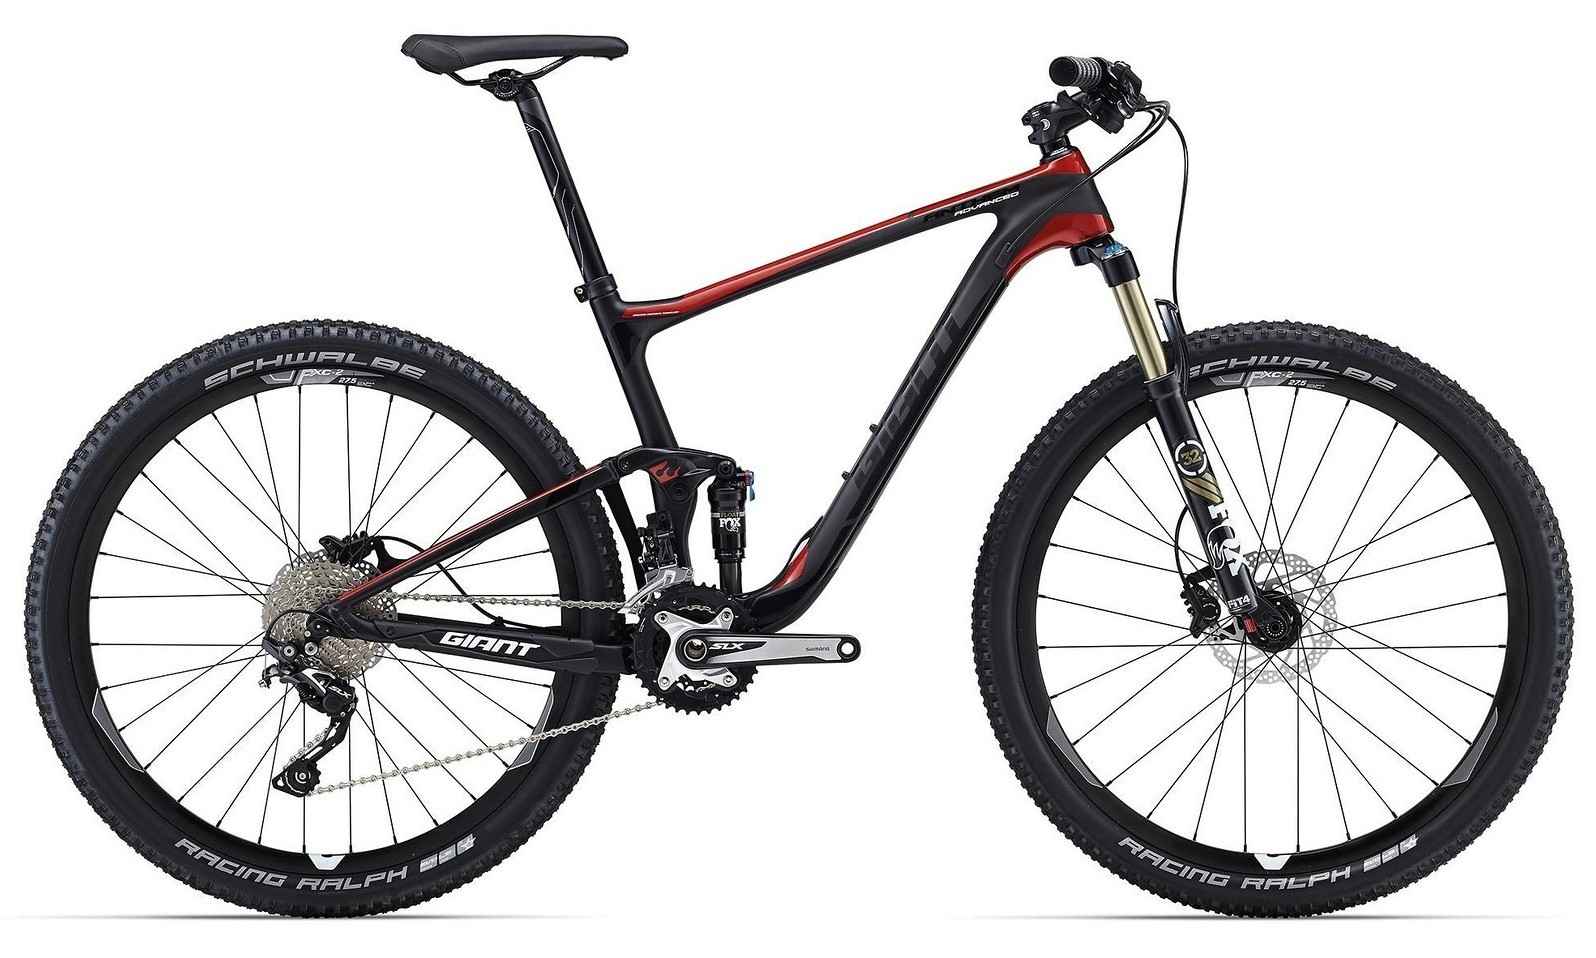 2016 Giant Anthem Advanced 27.5 2 Bike s1600_Anthem_Advanced_275_2_Comp_Red